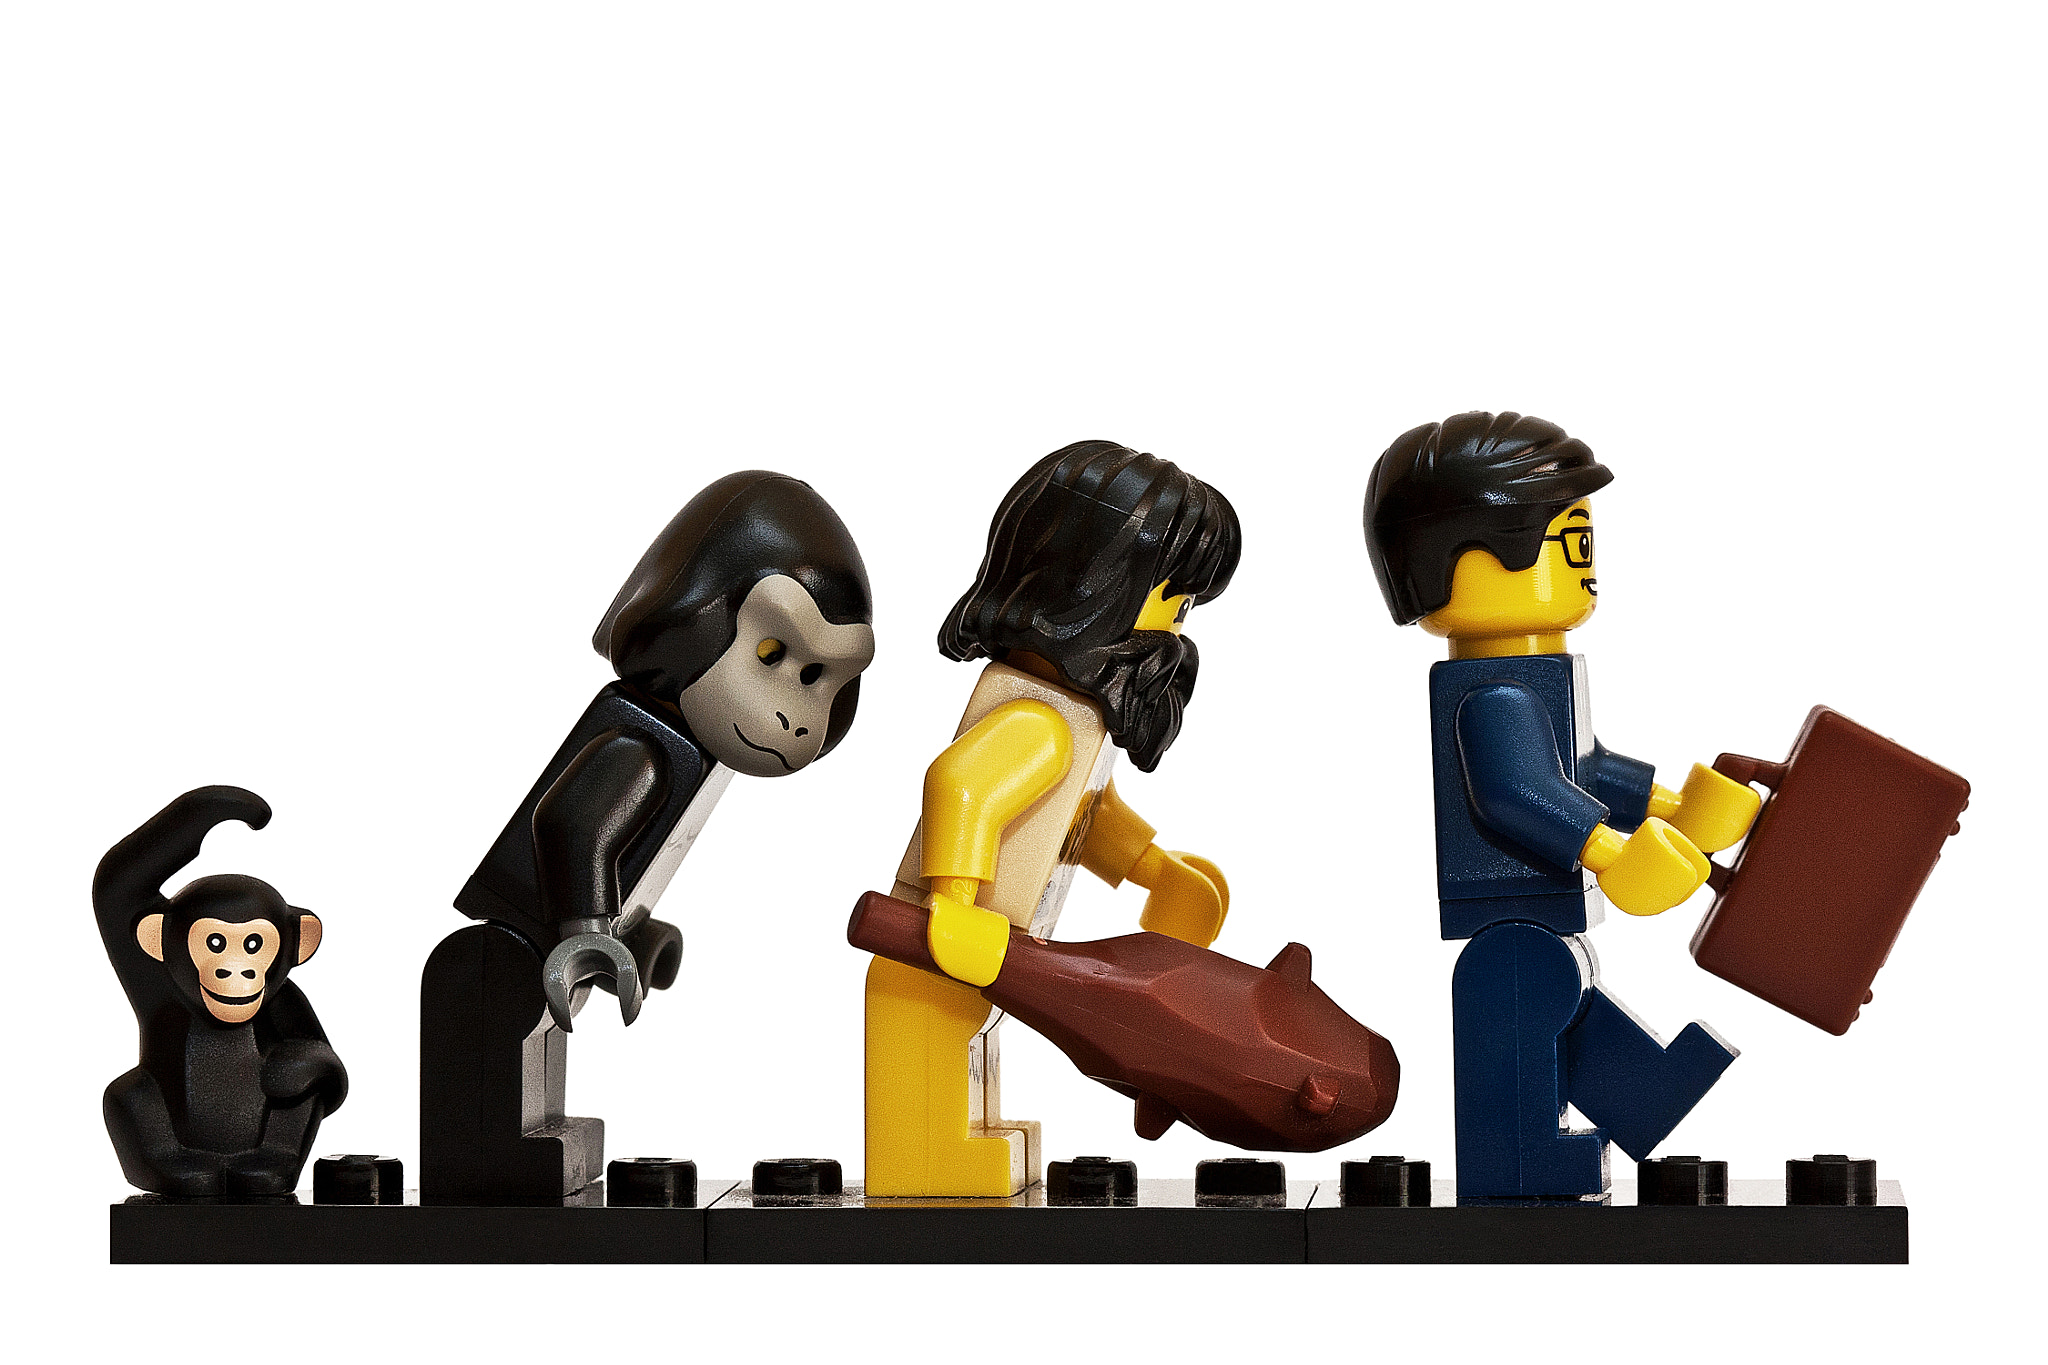 Photograph The Evolution of LEGO Man by Stephen O' Mahony on 500px